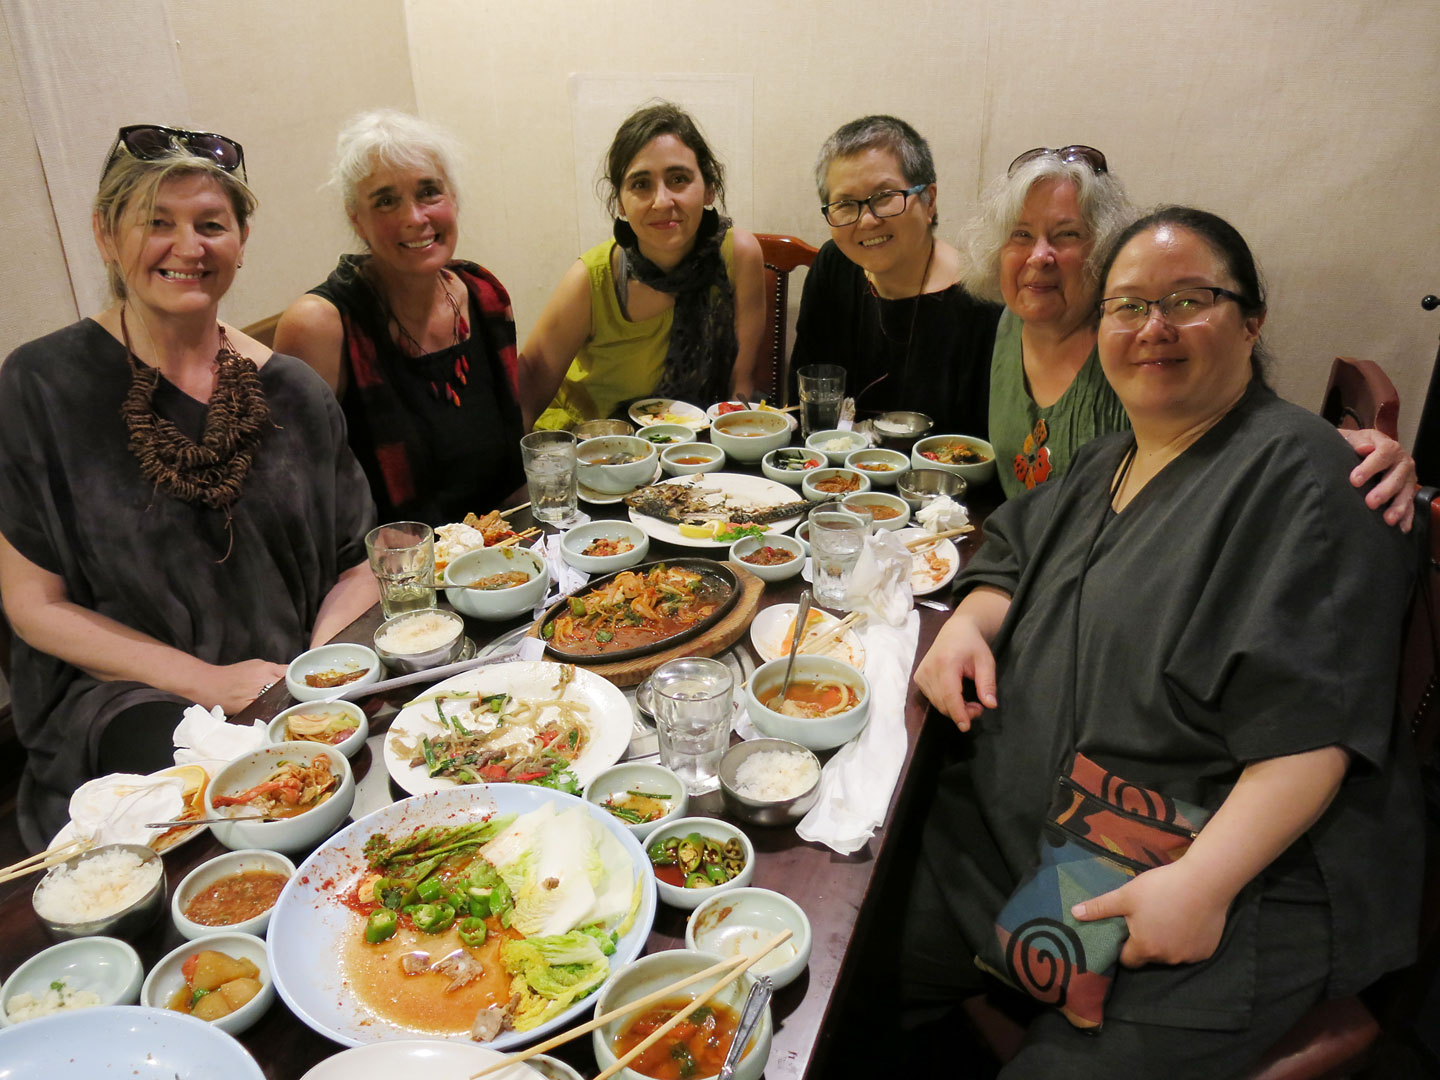 We had a fantastic Korean dinner at  Yechon , hosted by Chunghie Lee. From left to right are Ania Gilmore, Renate Maile-Moskowitz, and Eva Camacho-Sanchez, a felt clothing artist at the Smithsonian Craft Show, Chunghie, Carolyn and Jiyoung Chung.